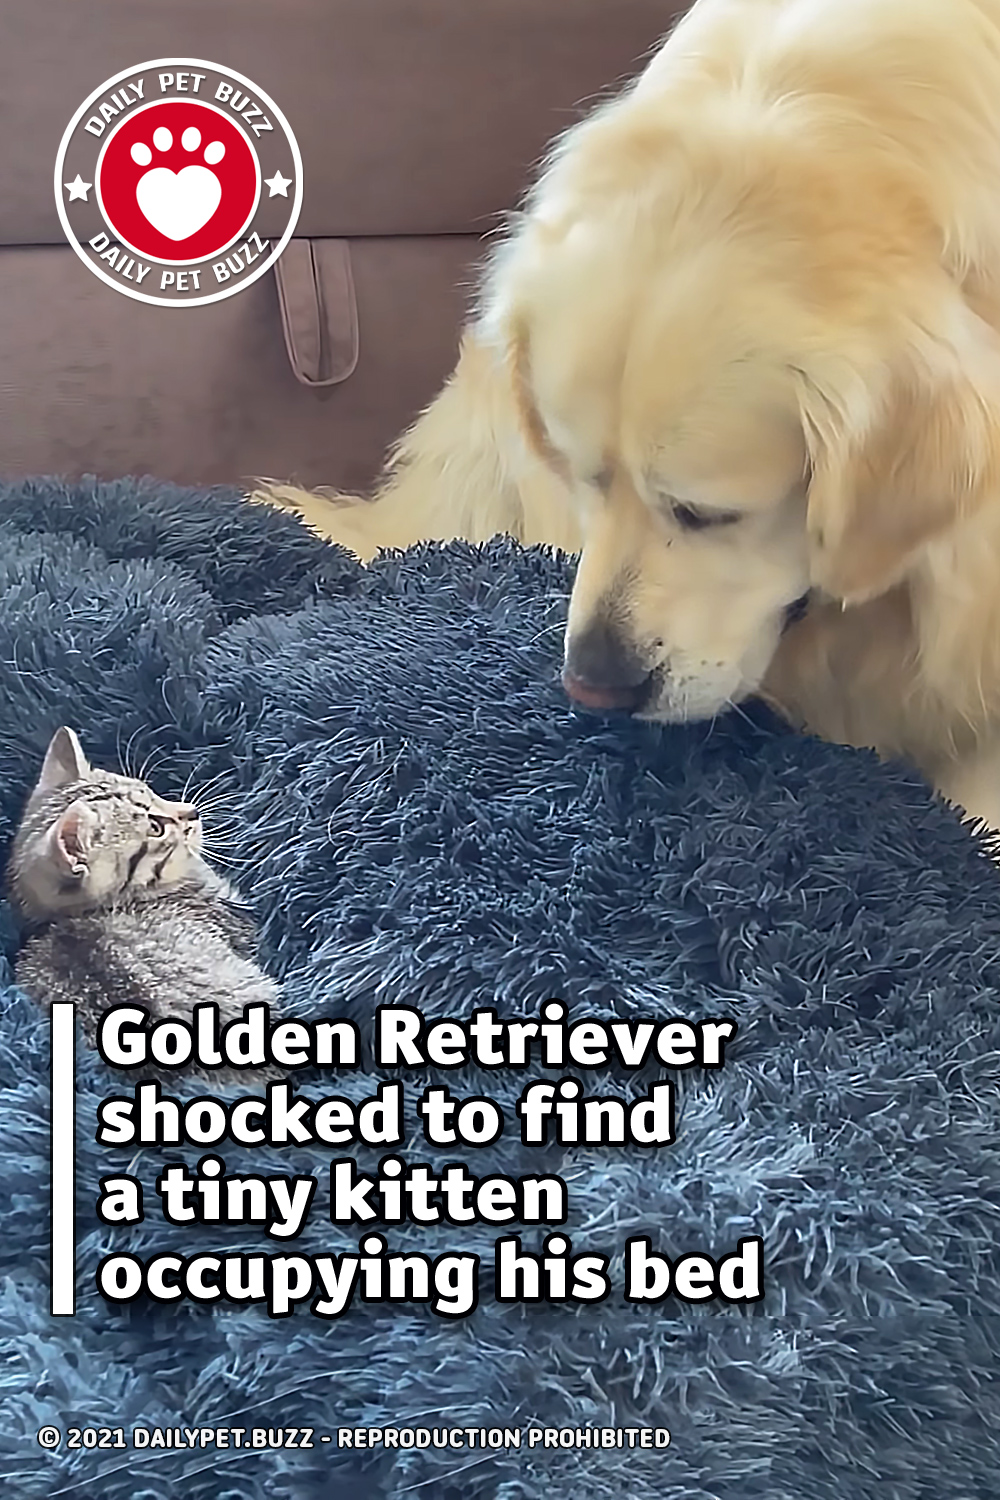 Golden Retriever shocked to find a tiny kitten occupying his bed